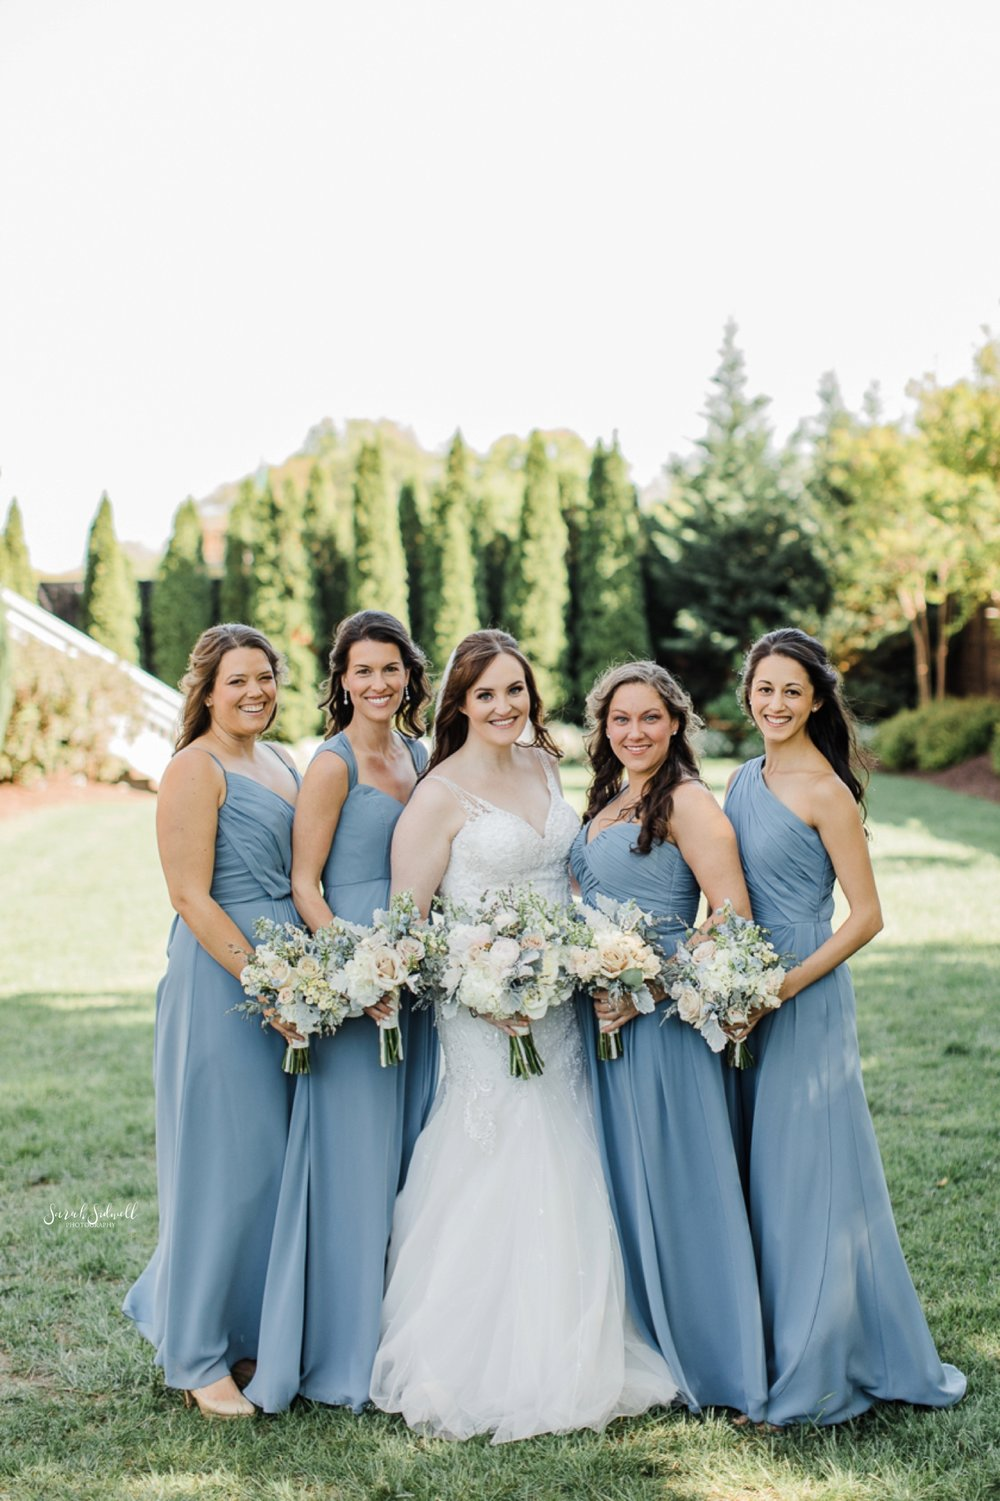 A bride stands with her bridal party and smiles.